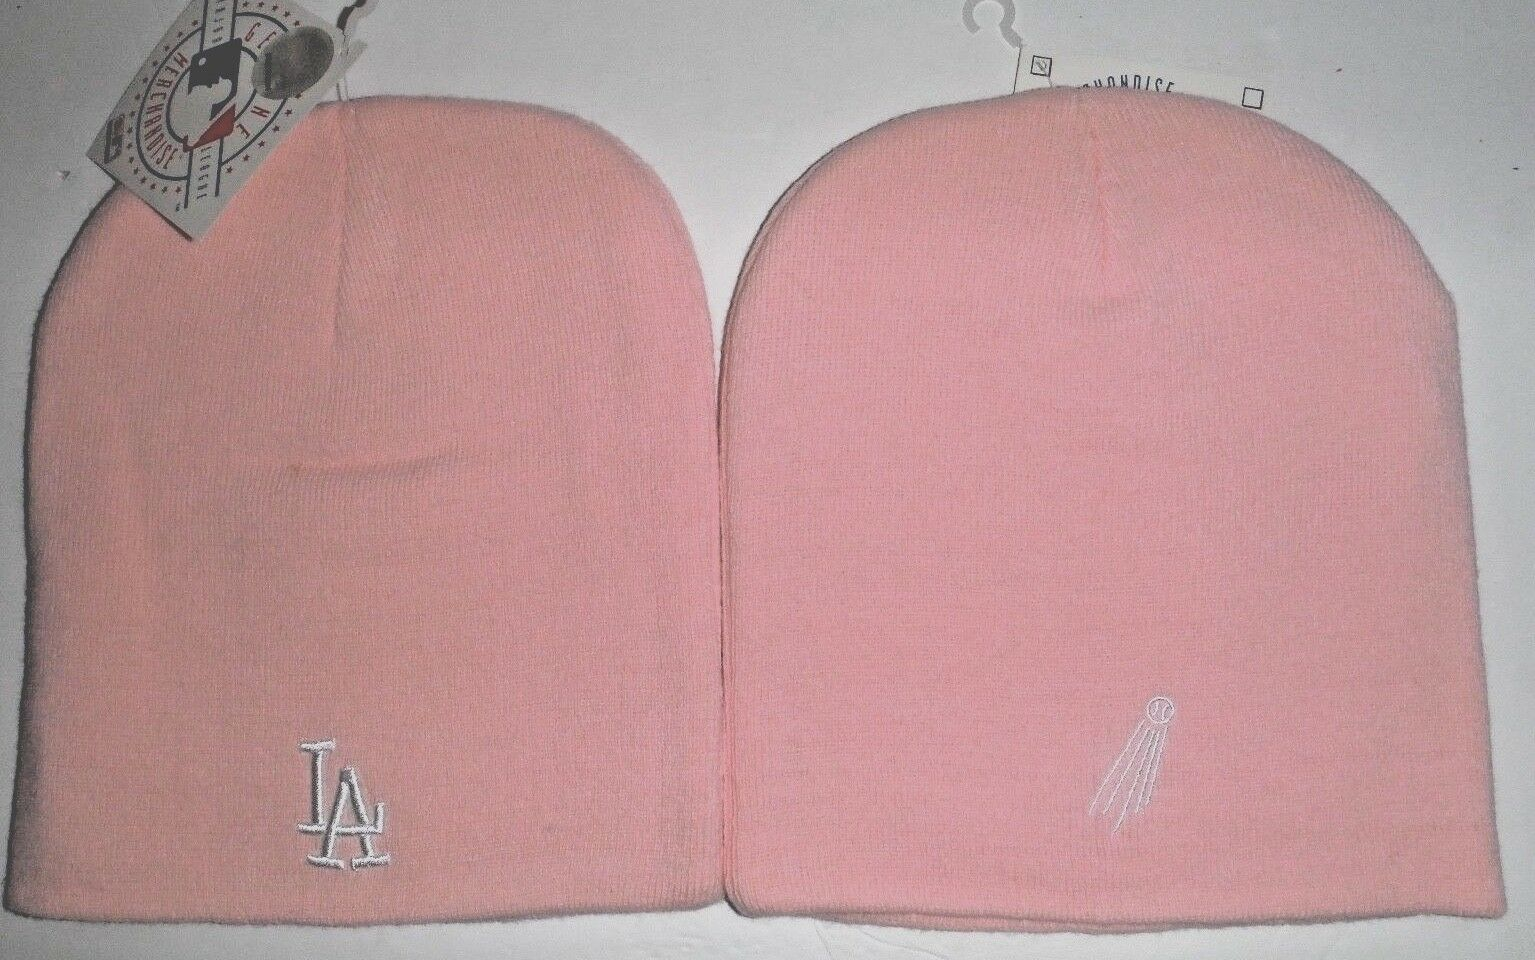 Pink Dodgers beanie for women